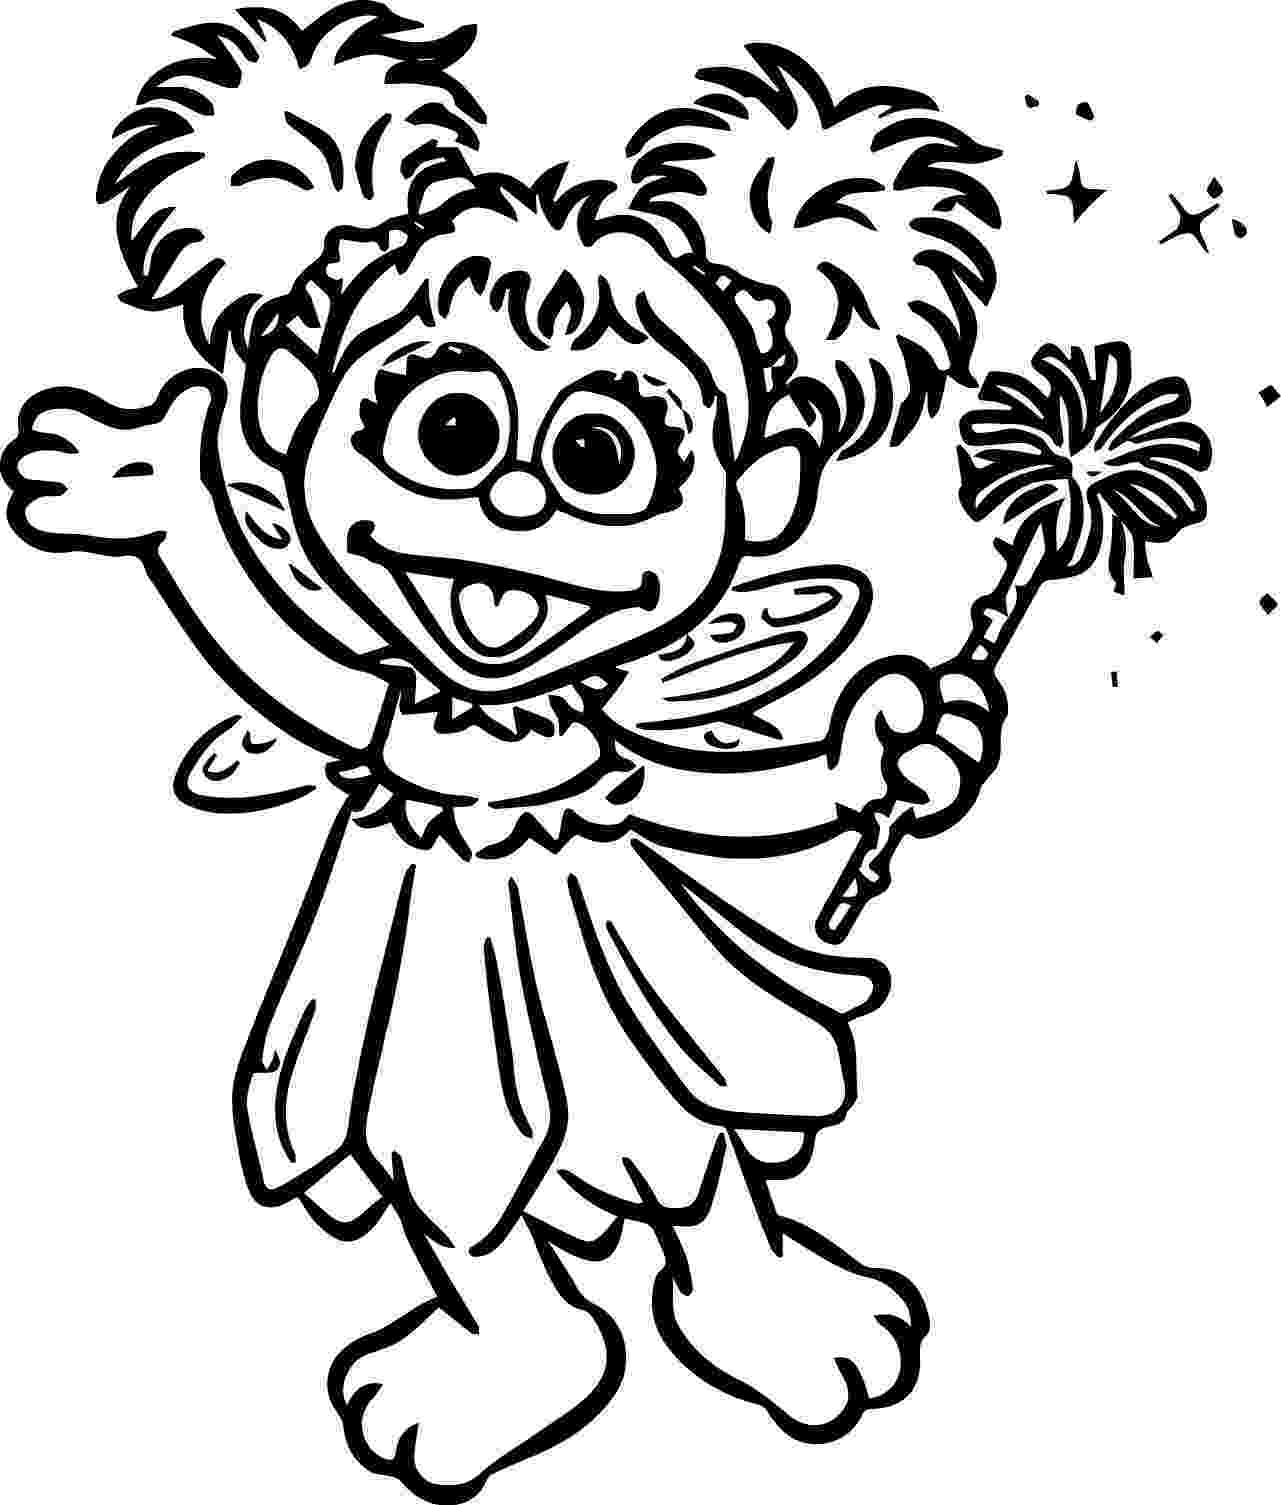 coloring pages of sesame street characters picture of sesame street coloring page color luna sesame street characters coloring of pages